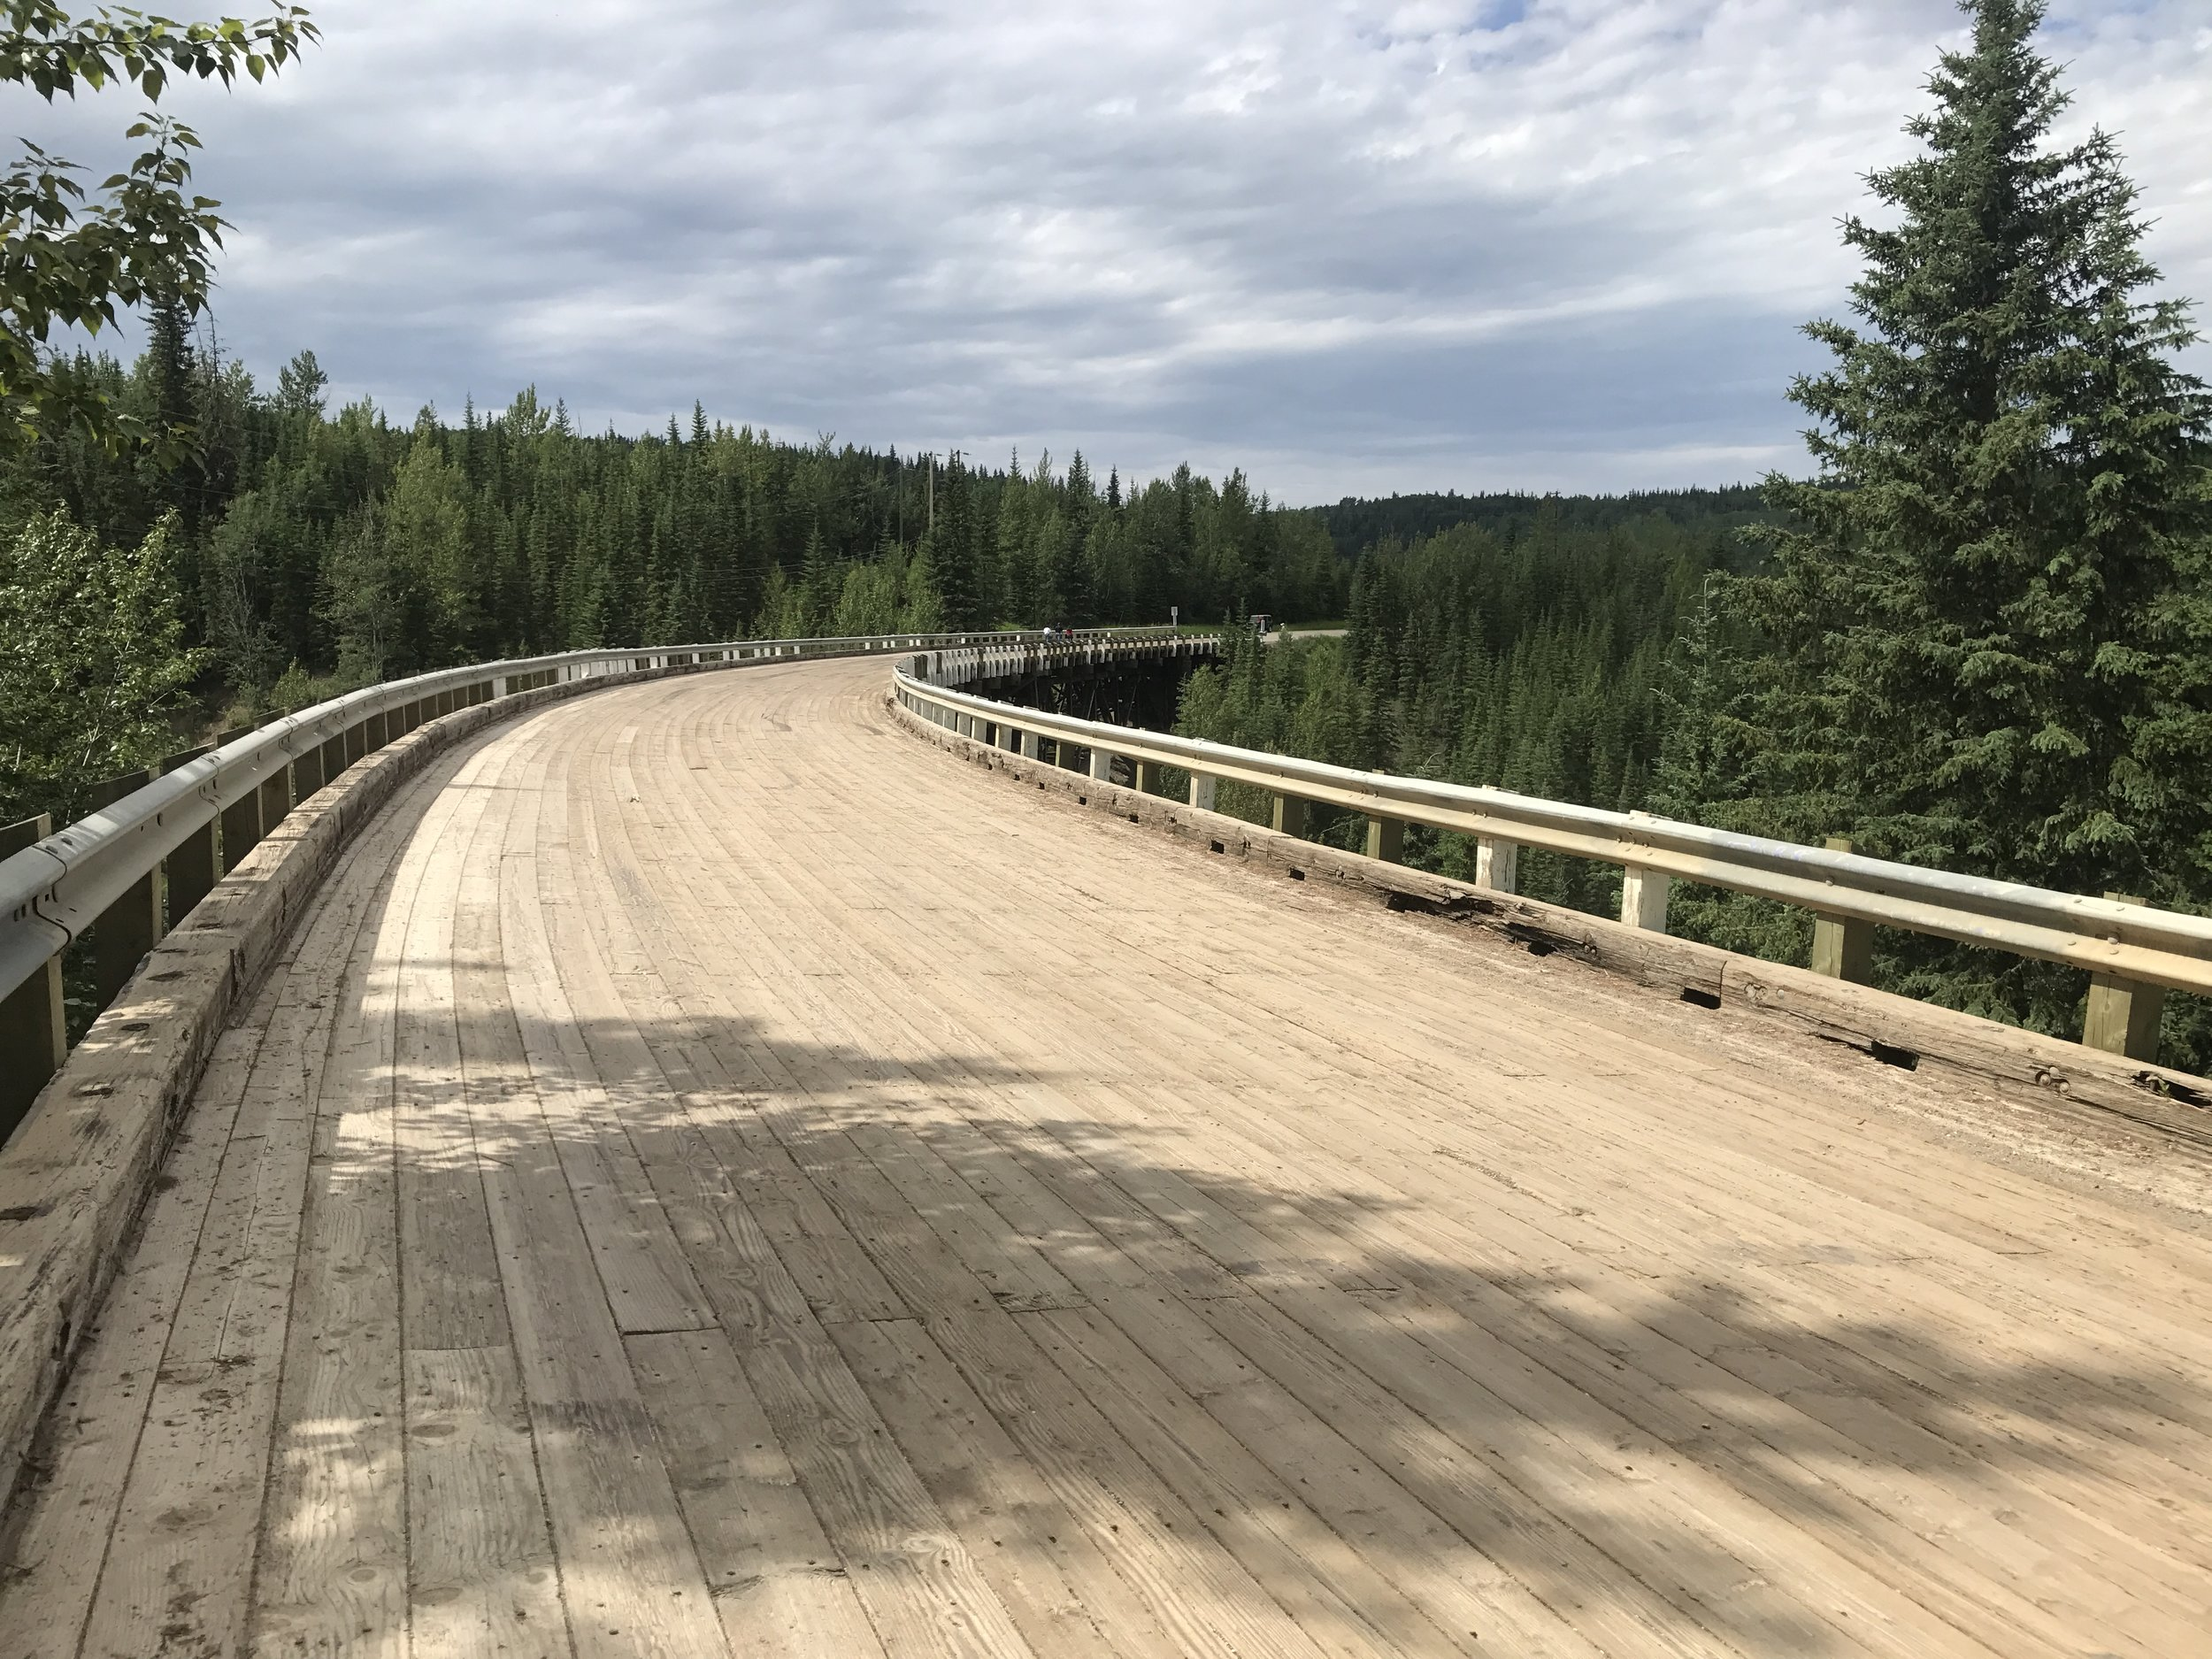 Notice the surface is made of wood and the bridge is curved.